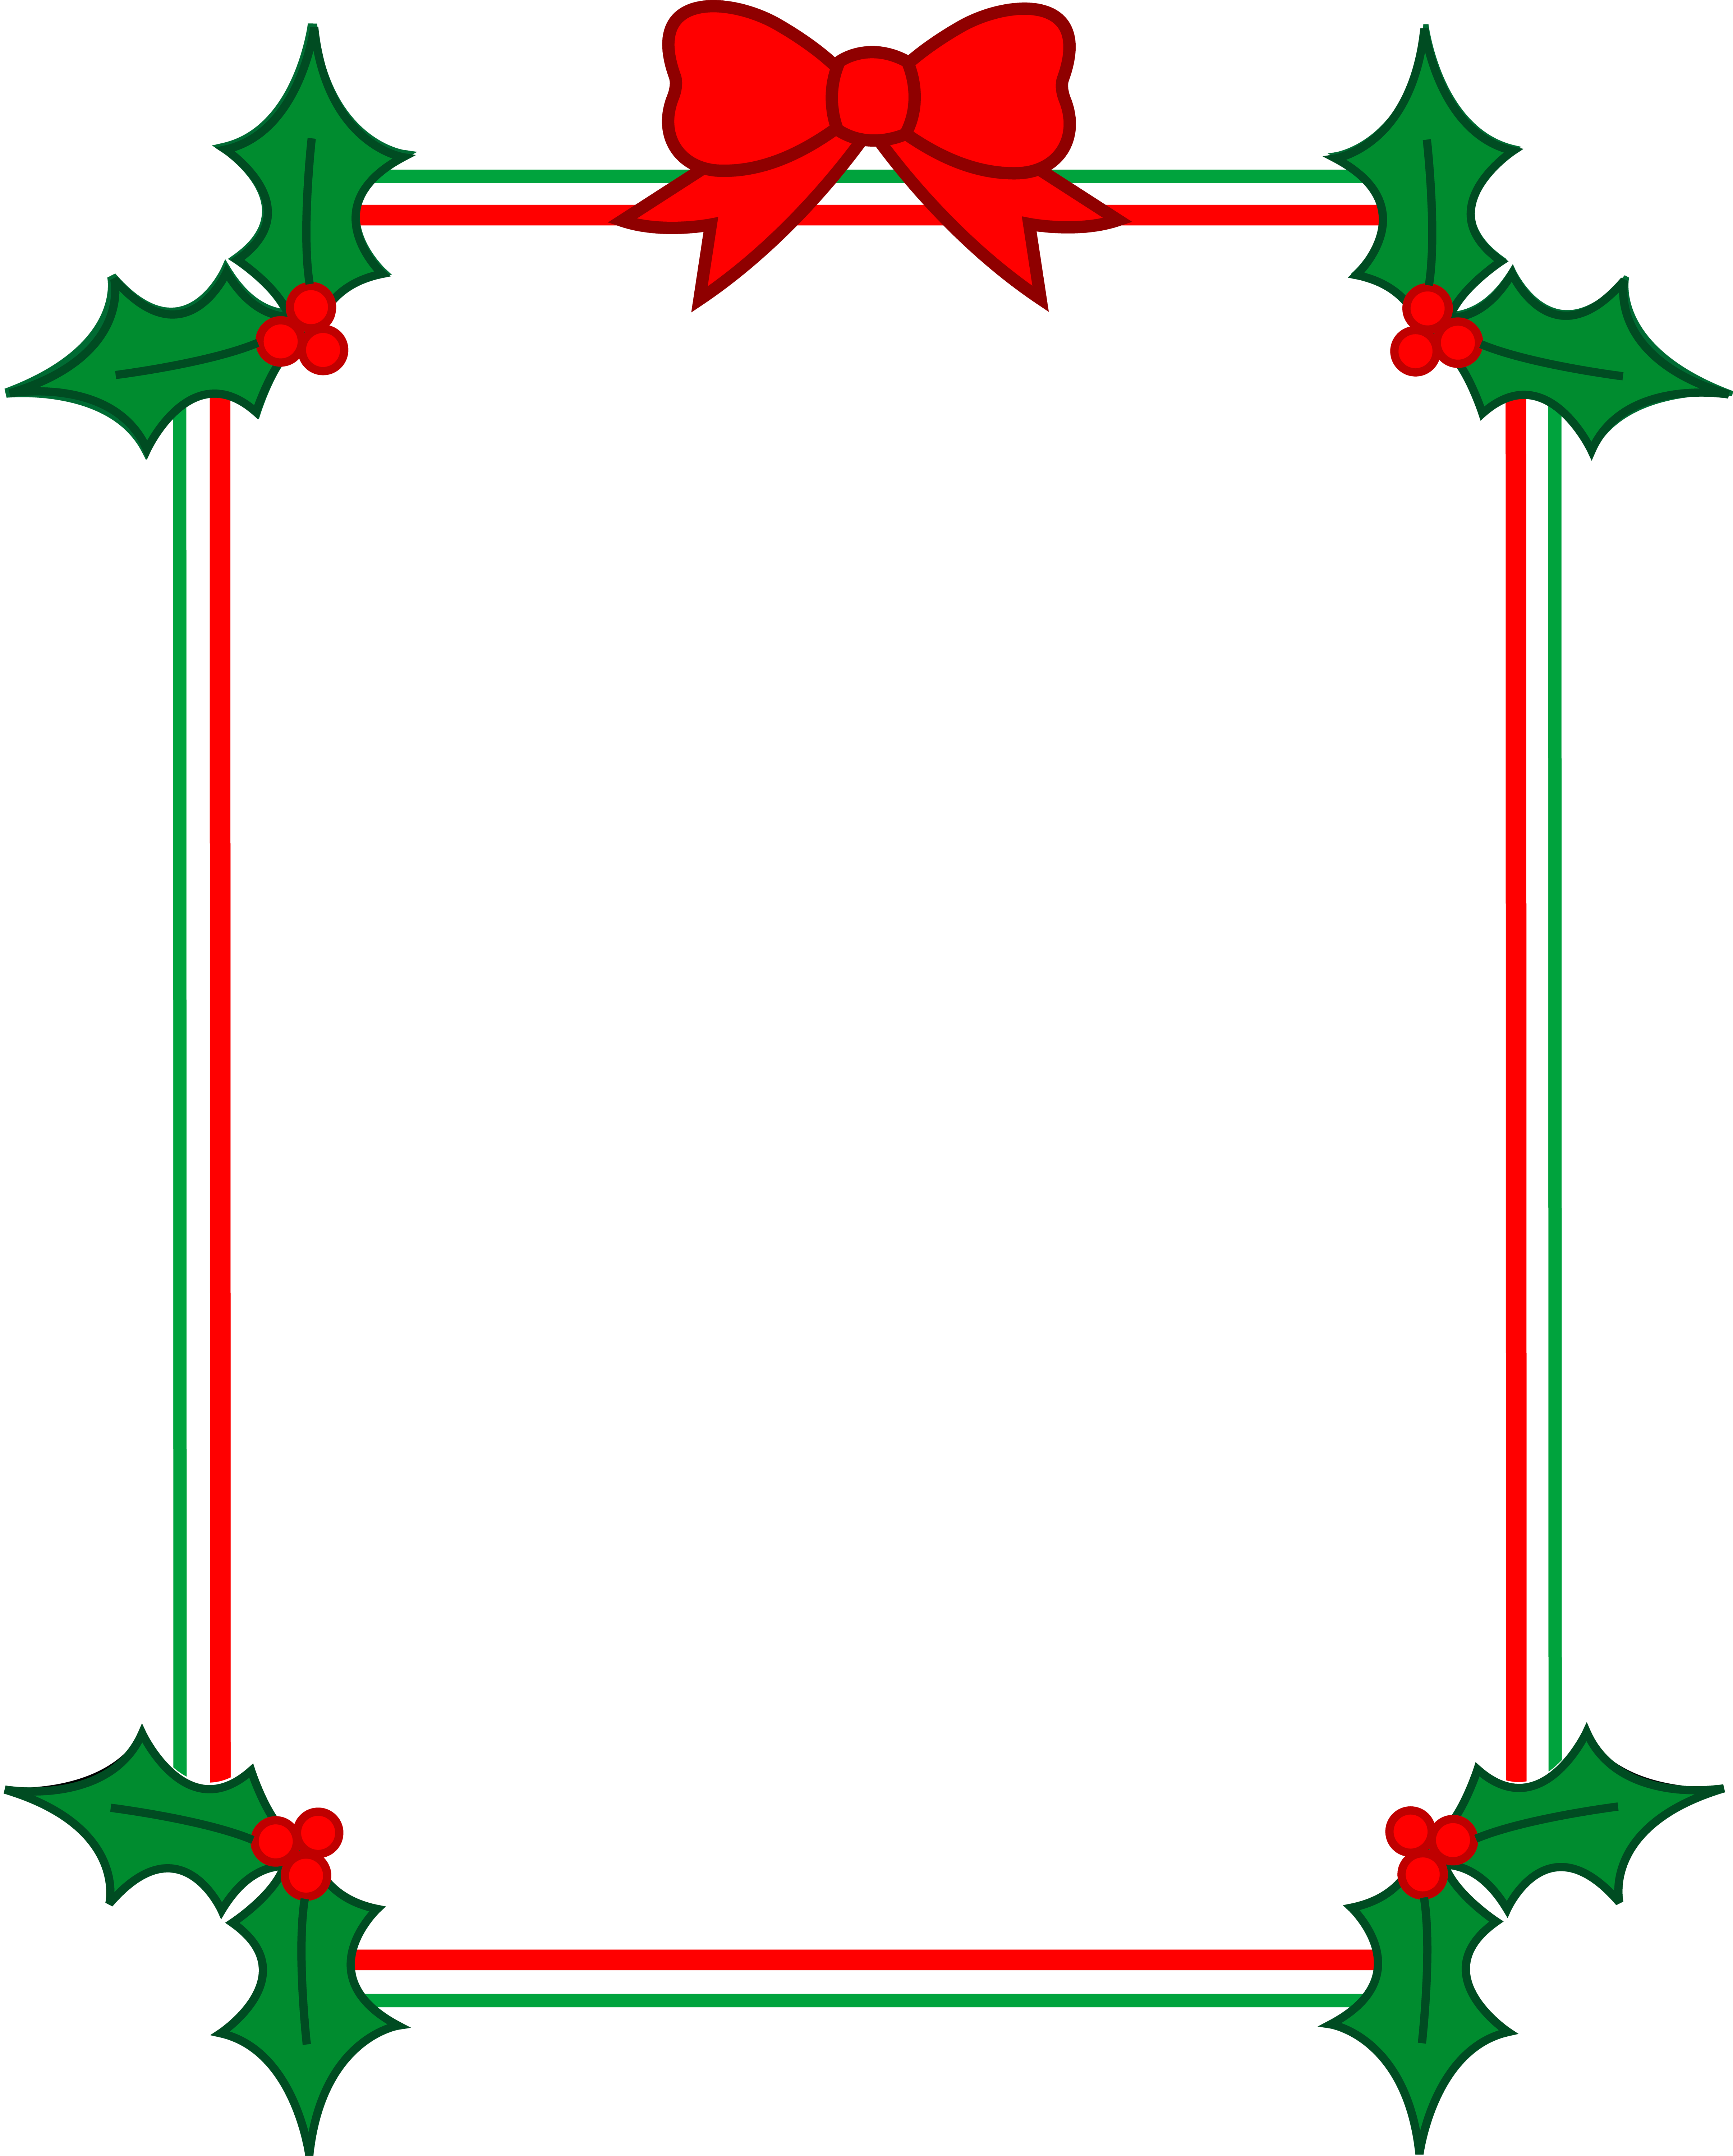 Christmas Holiday Clipart.Free Christmas Holiday Borders Clipart Free Image